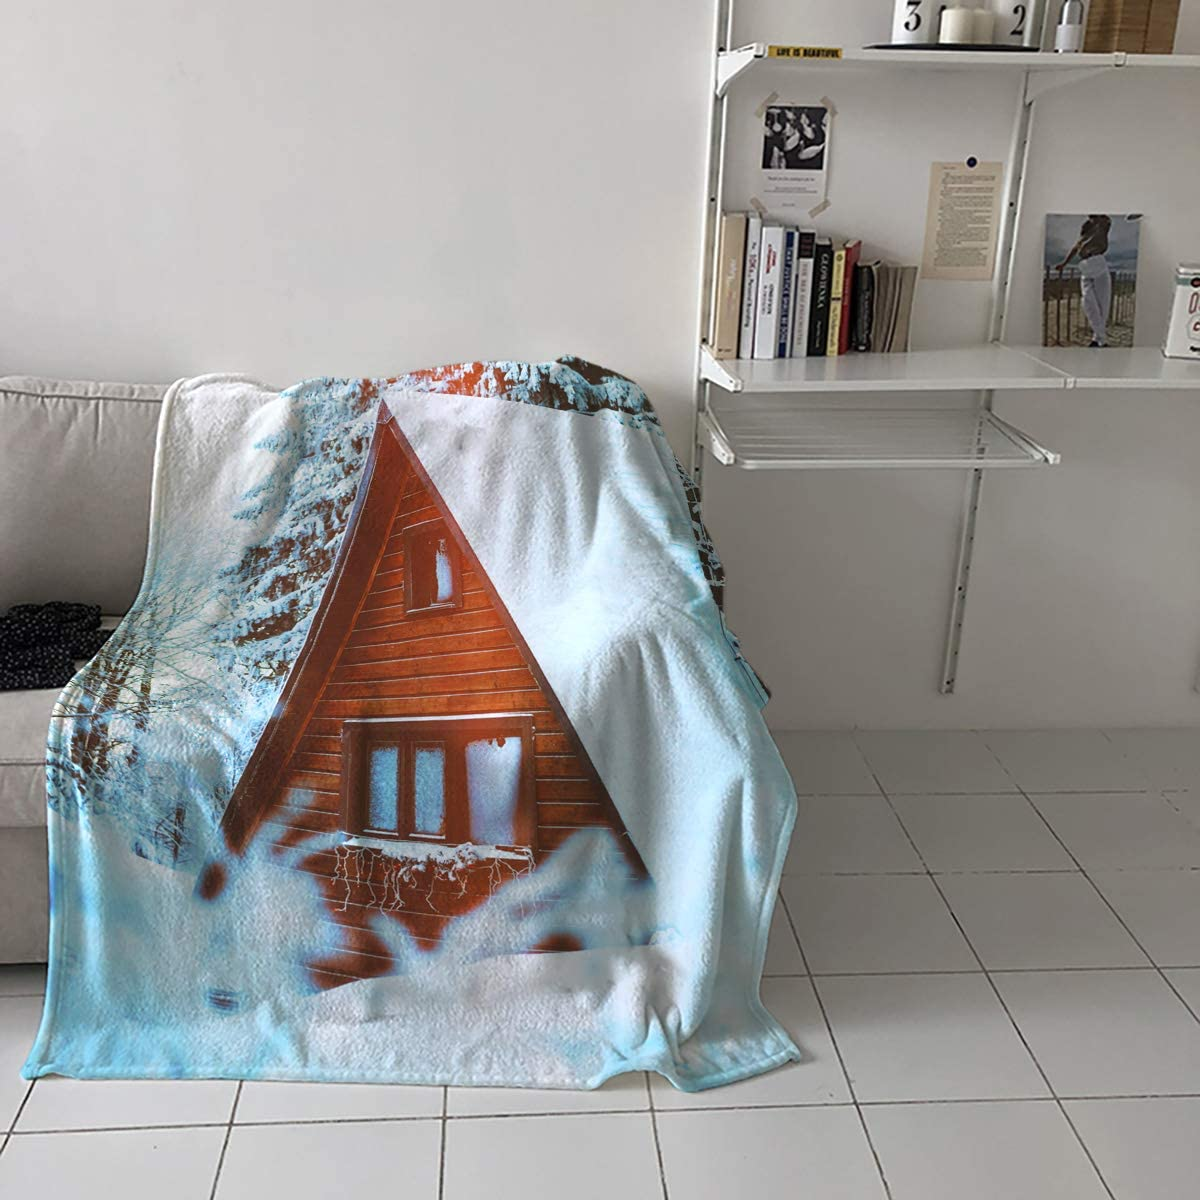 Teamery latest 50x60in Throw Blanket for Adults Scen Winter Snow Kids - Industry No. 1